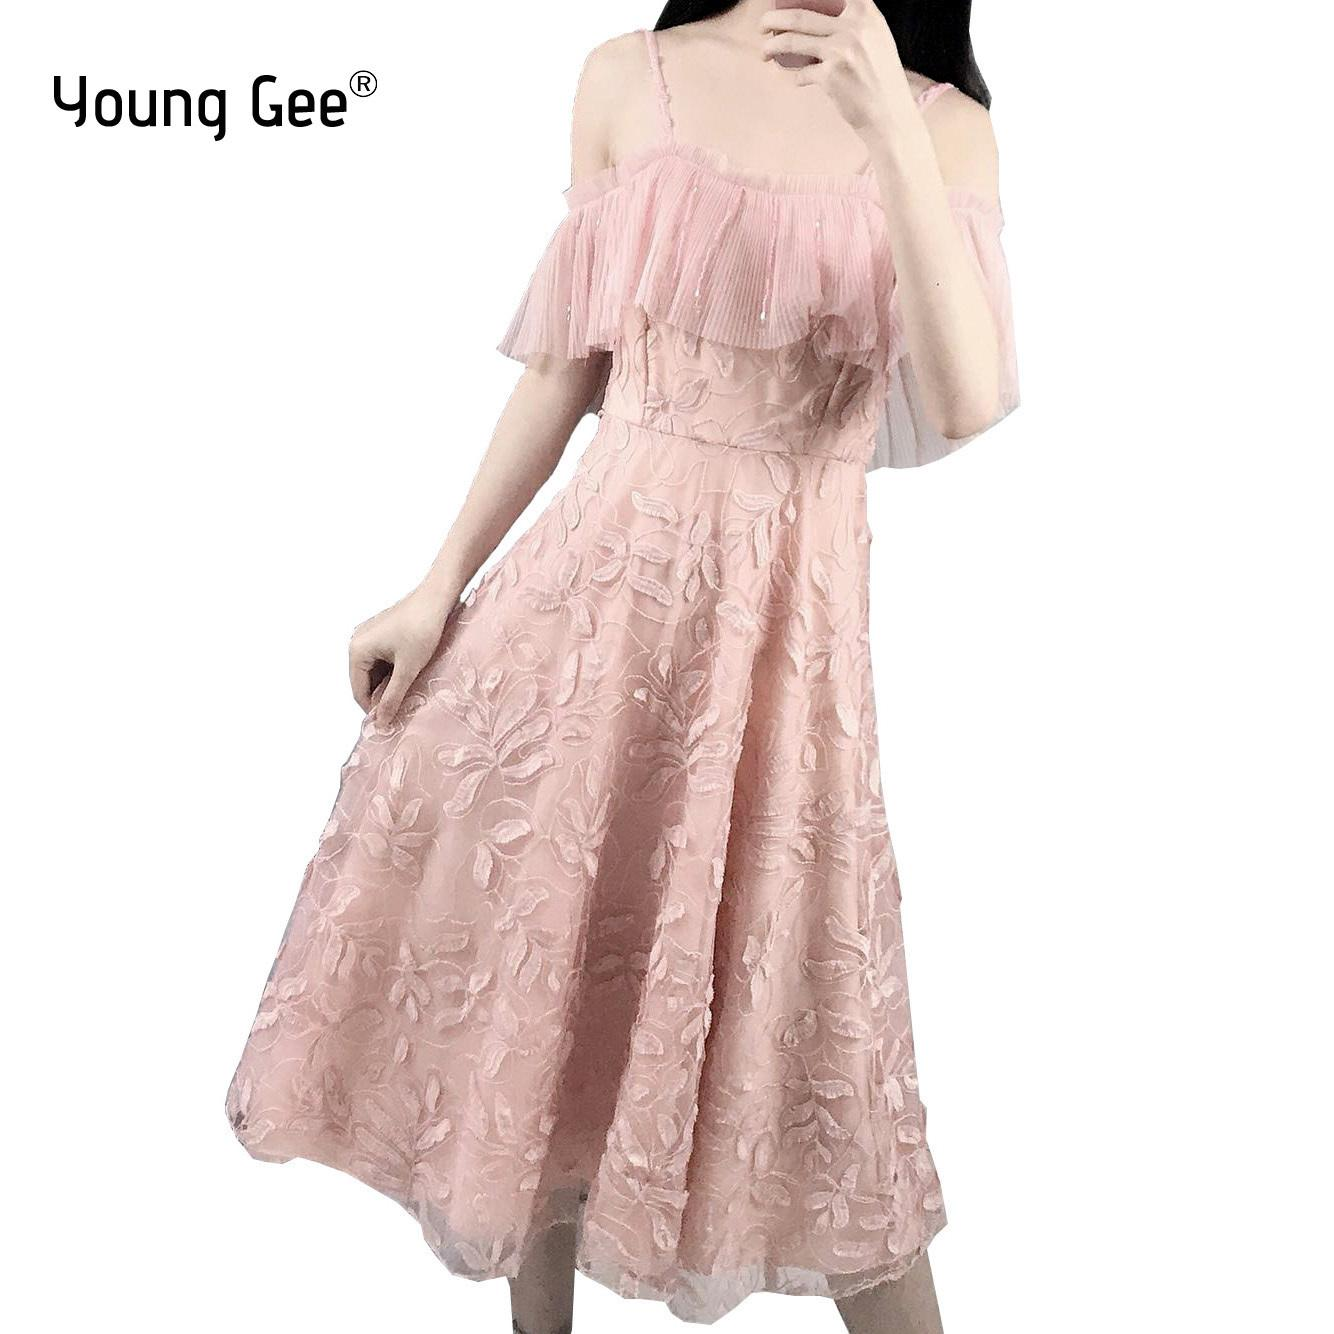 c189d5a13d6d7 Young Gee Women Elegant Lace Floral Embroidery Midi Dresses Sexy Spaghetti  Strap Crystal Beading Pink Off Shoulder Party Dress Q190522